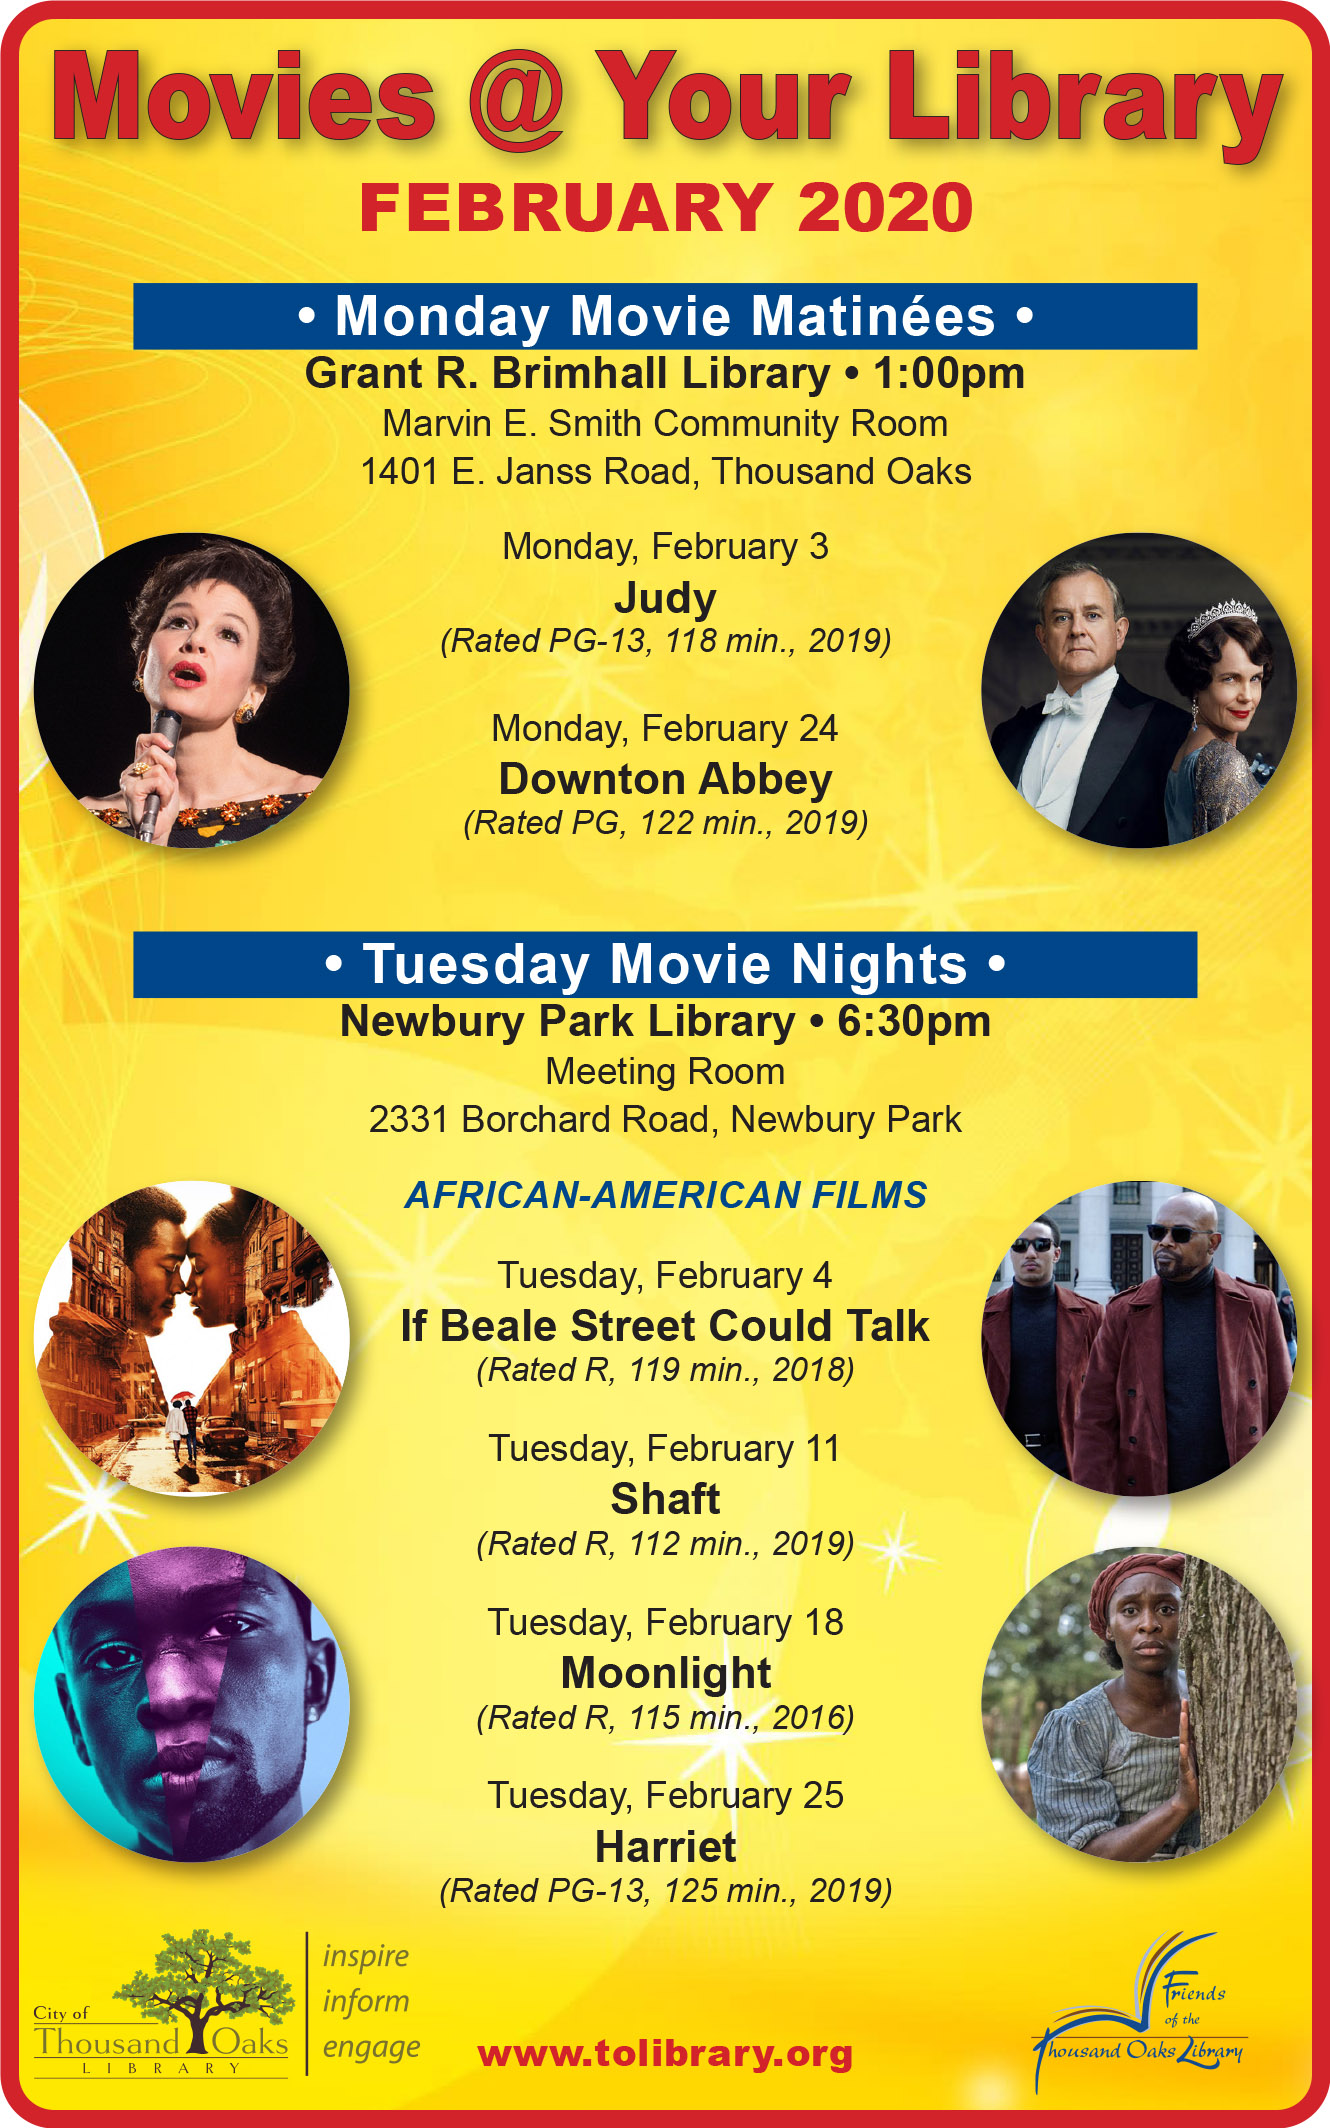 Movies @ Your Library - Feb 2020